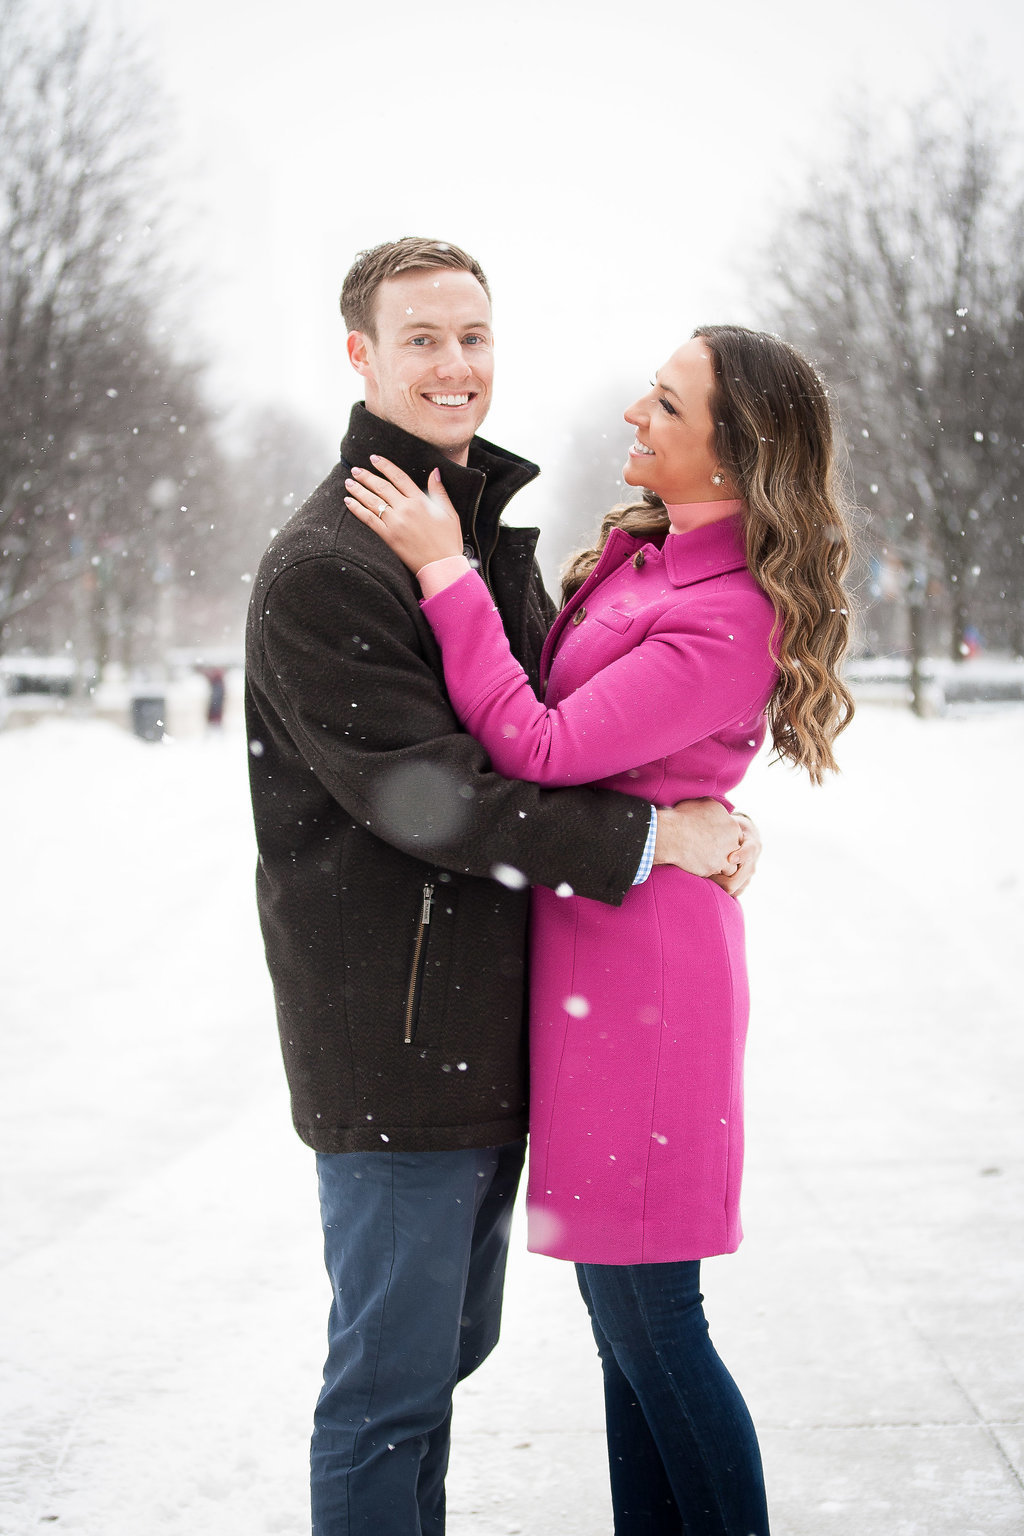 Millennium Park Chicago Illinois Winter Engagement Photographer Taylor Ingles 4